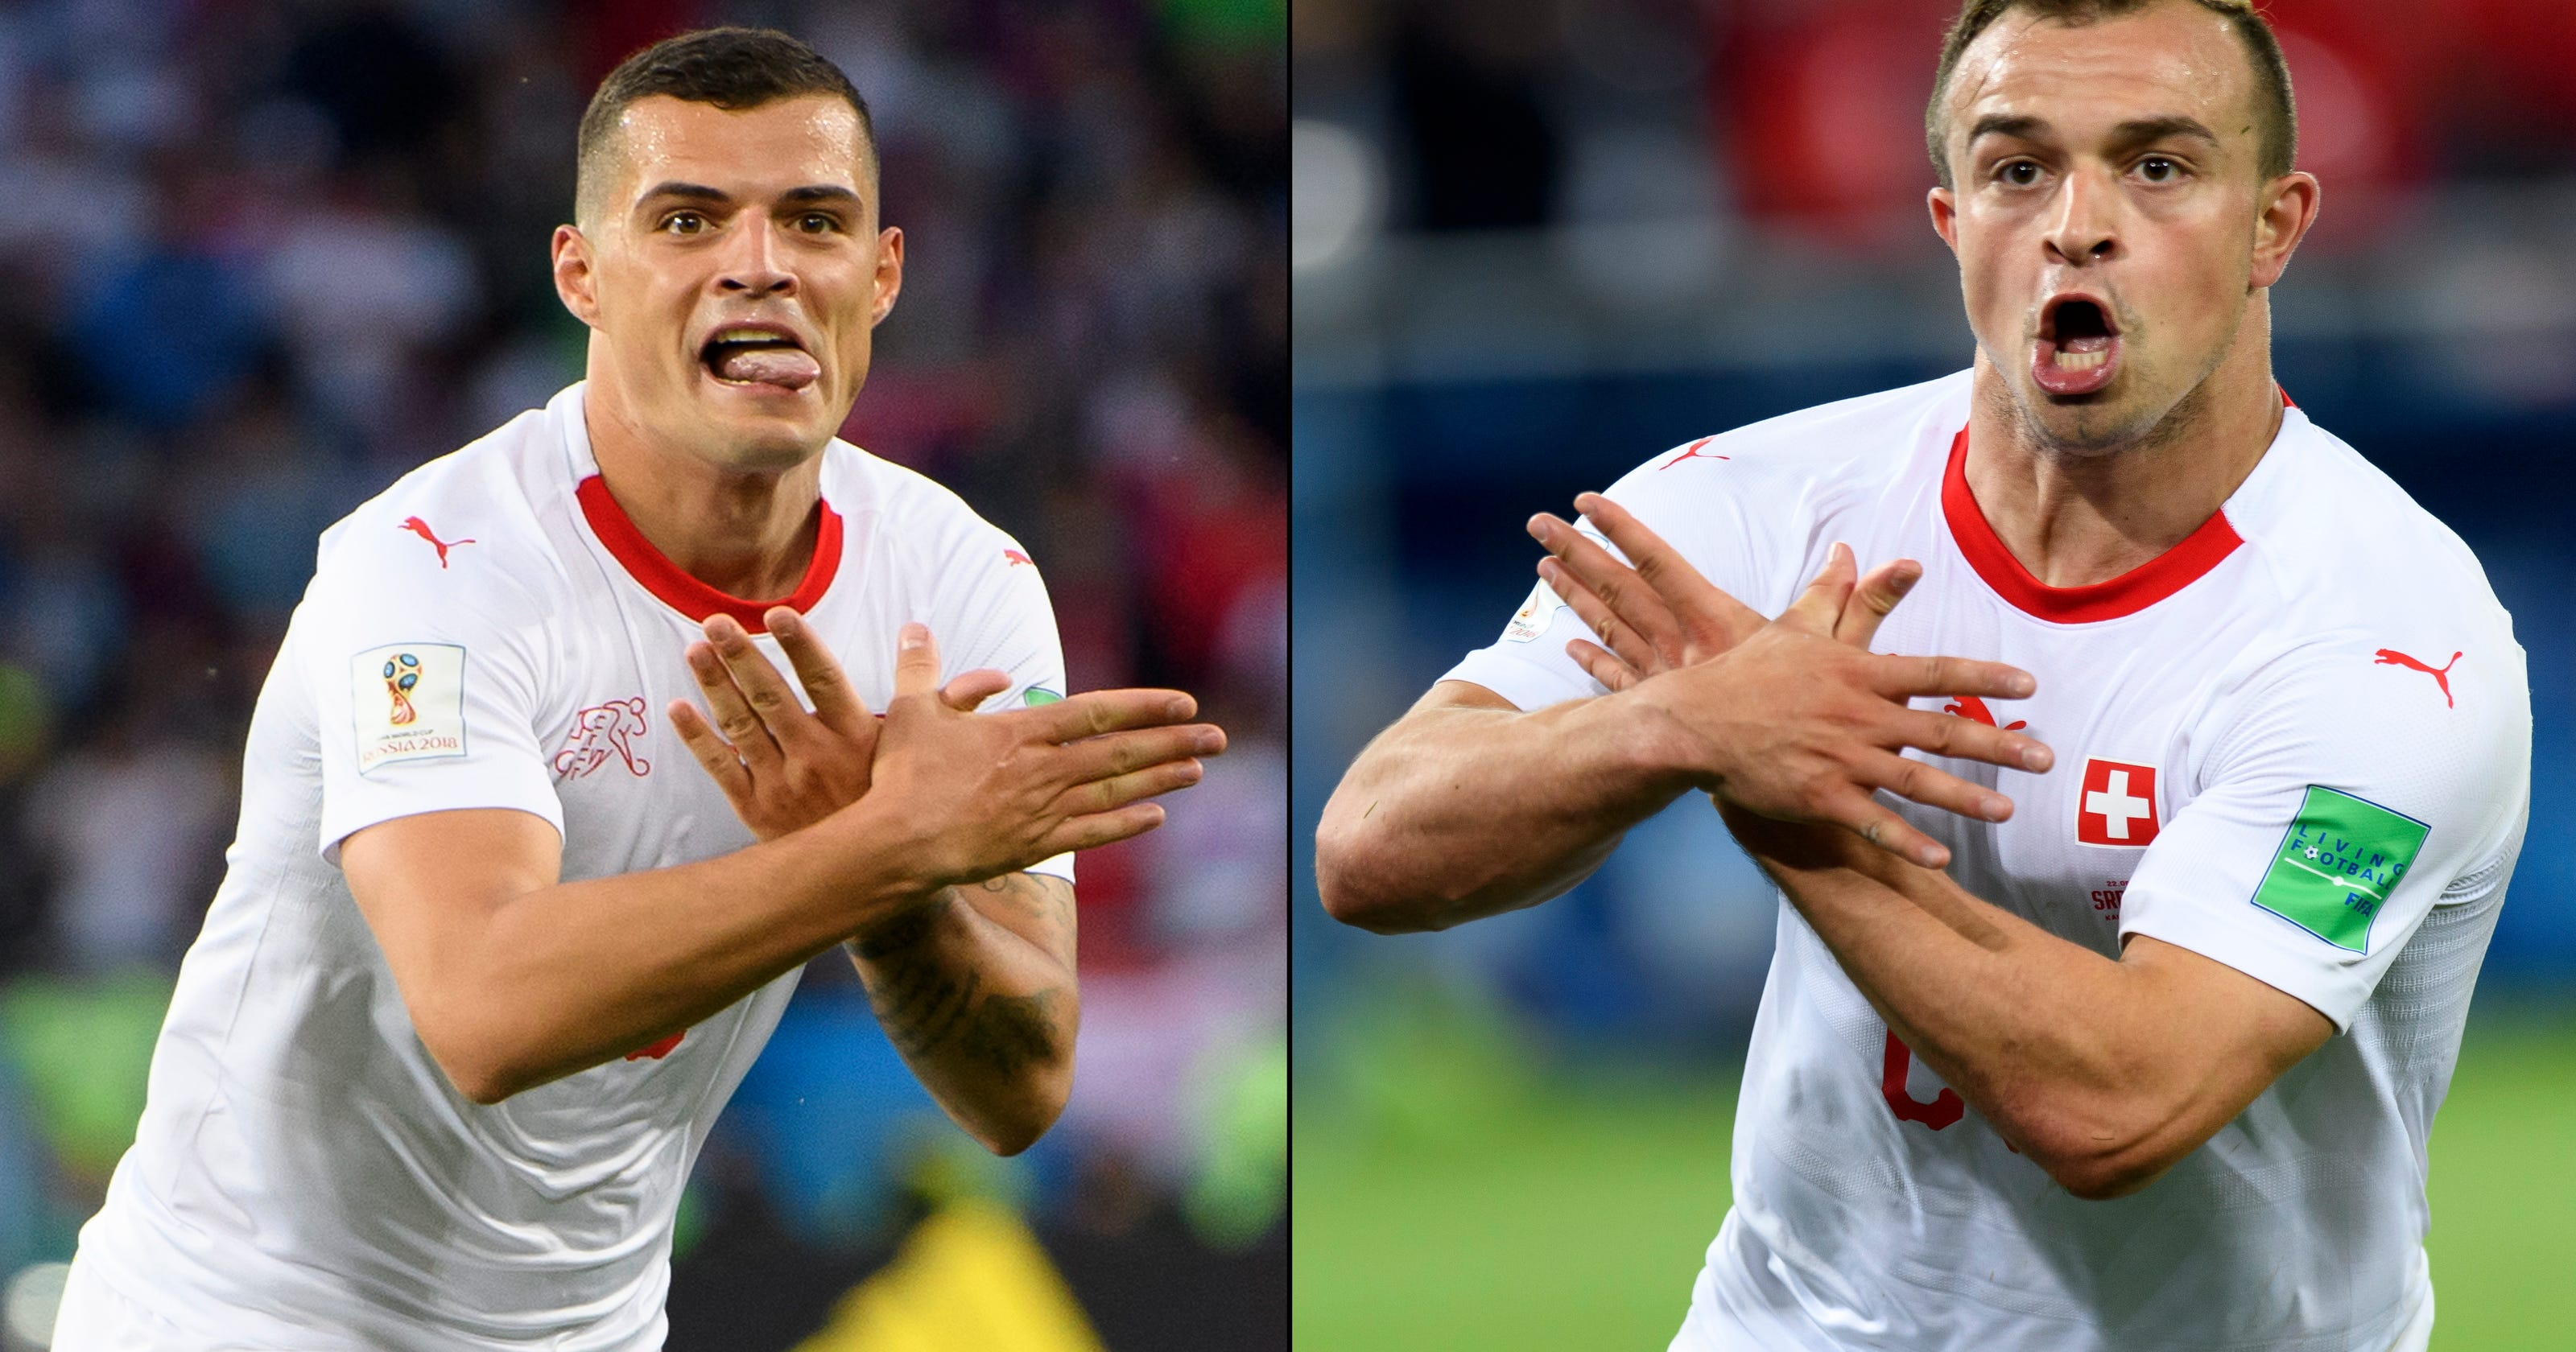 6f1a5afe646 World Cup: Controversial gestures could warrant ban for Swiss players